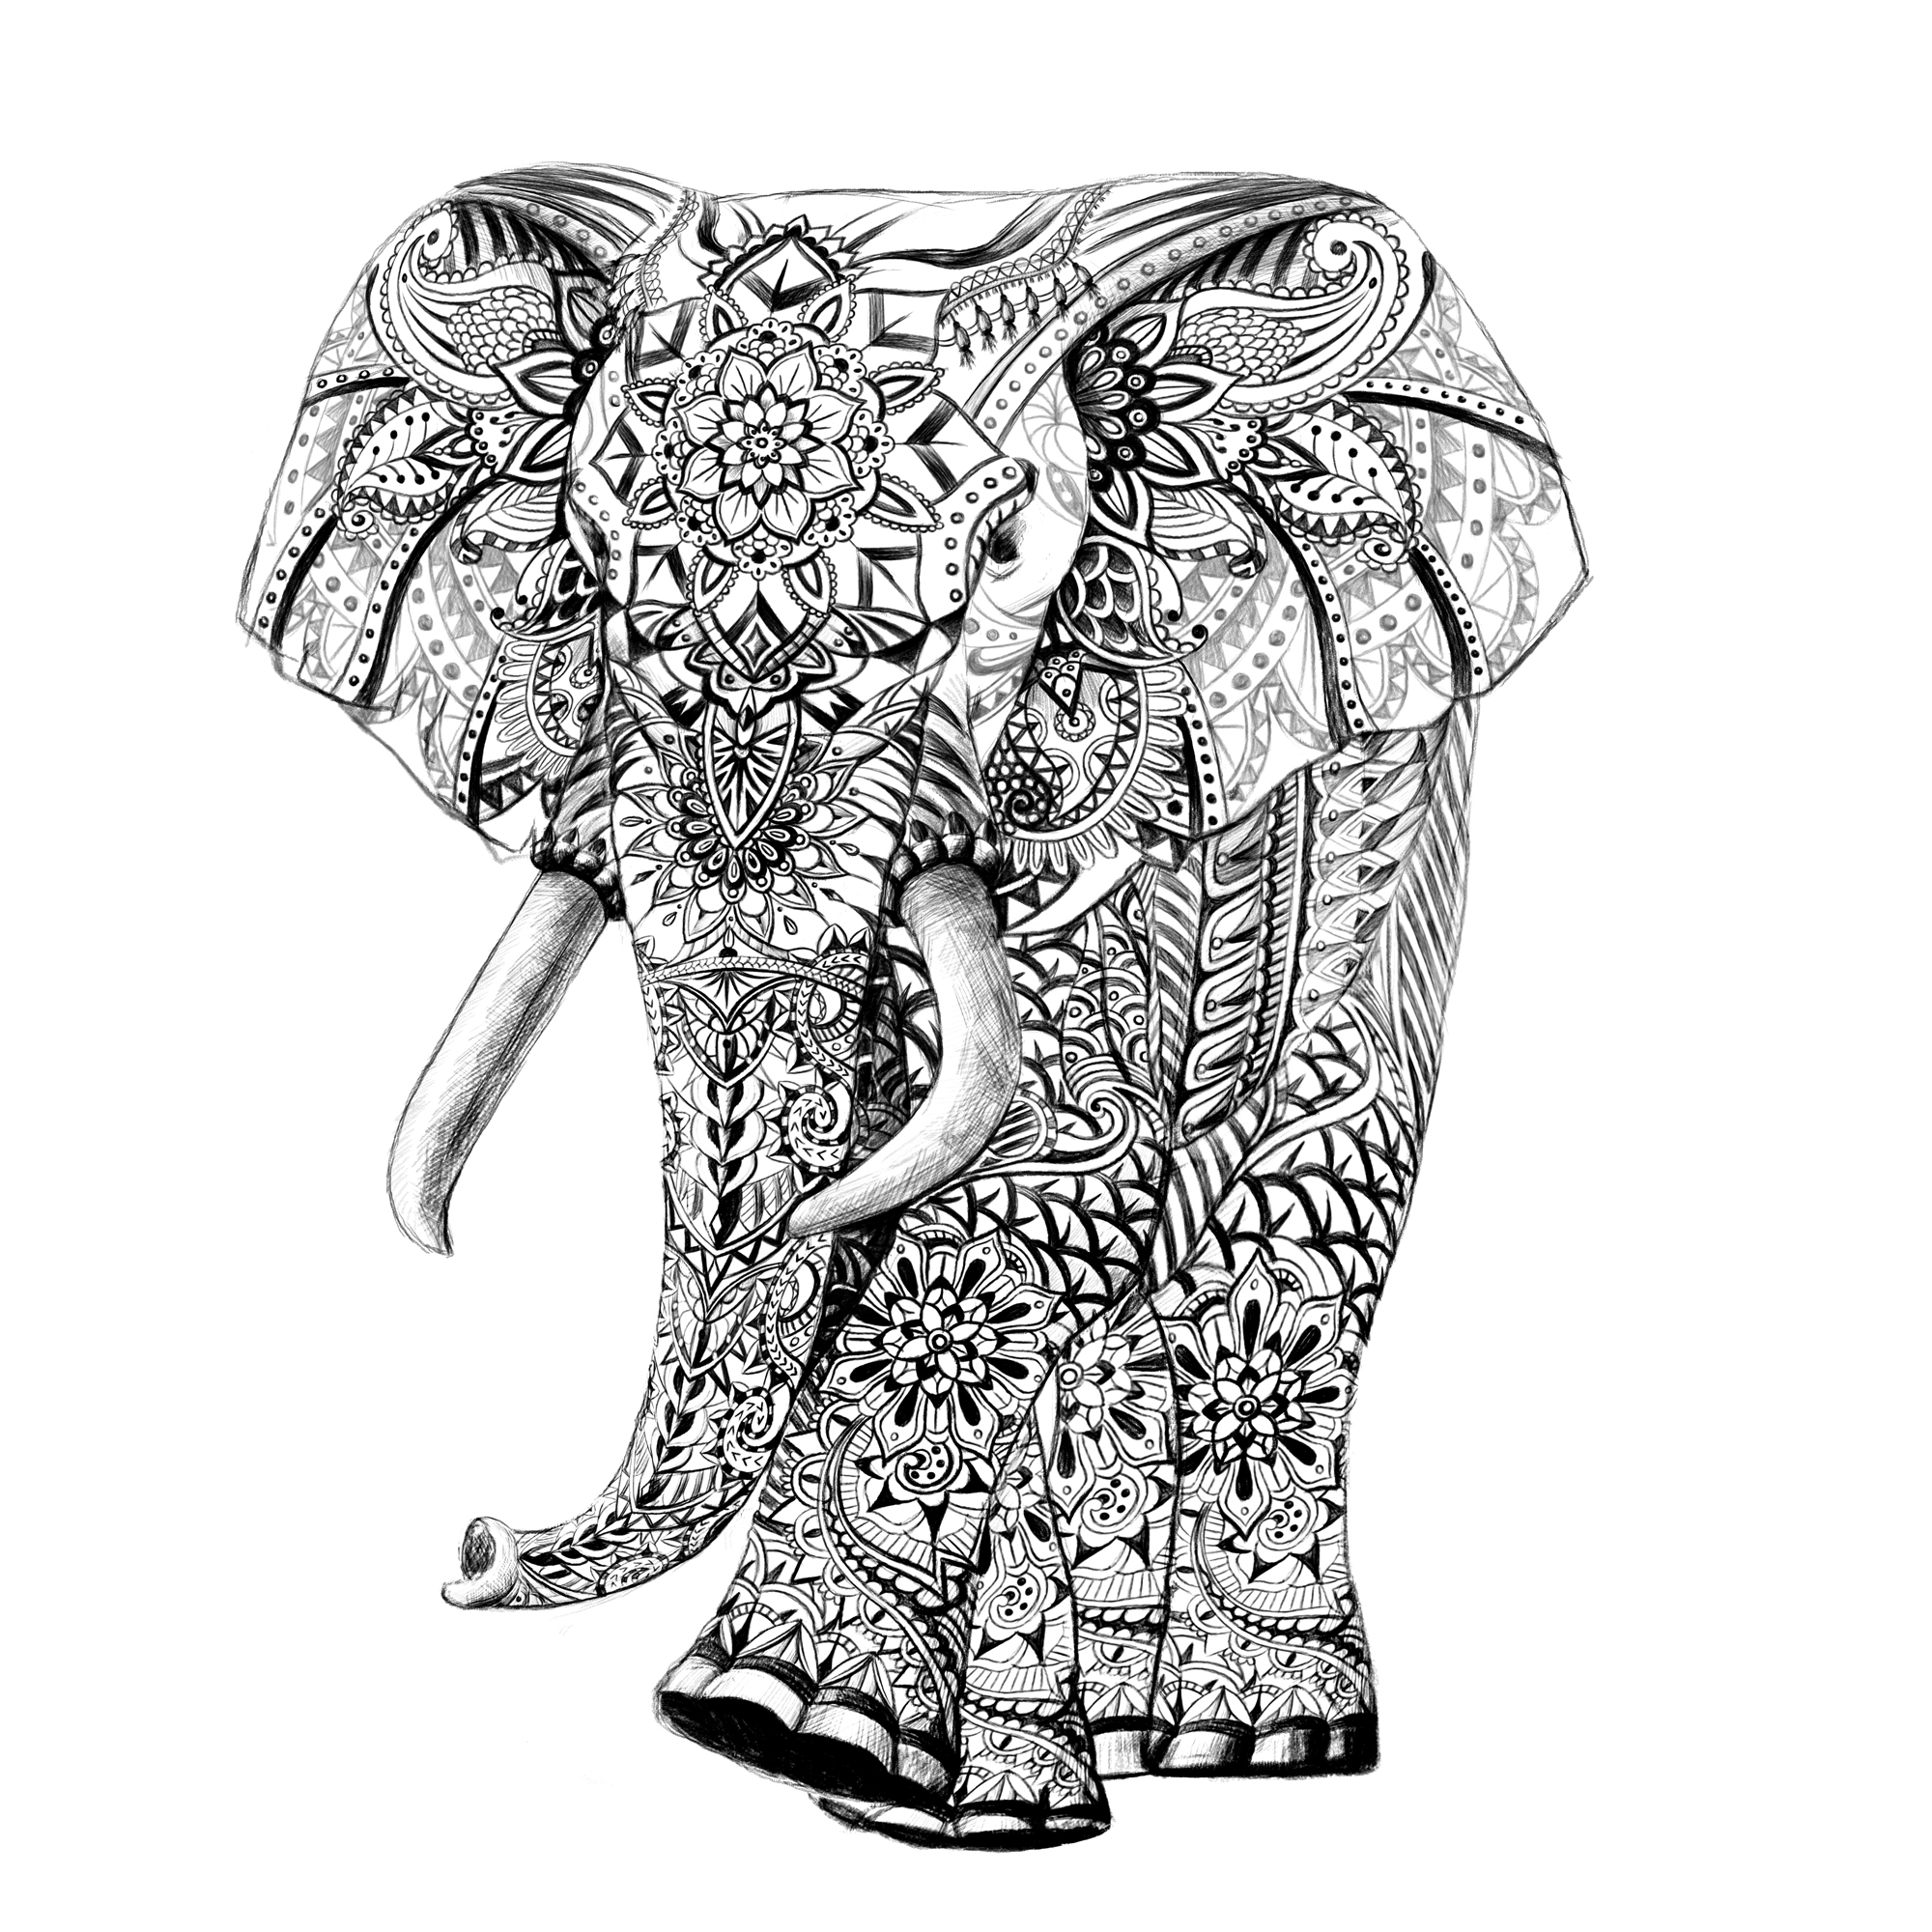 buddha elephant drawing at getdrawings com free for personal use